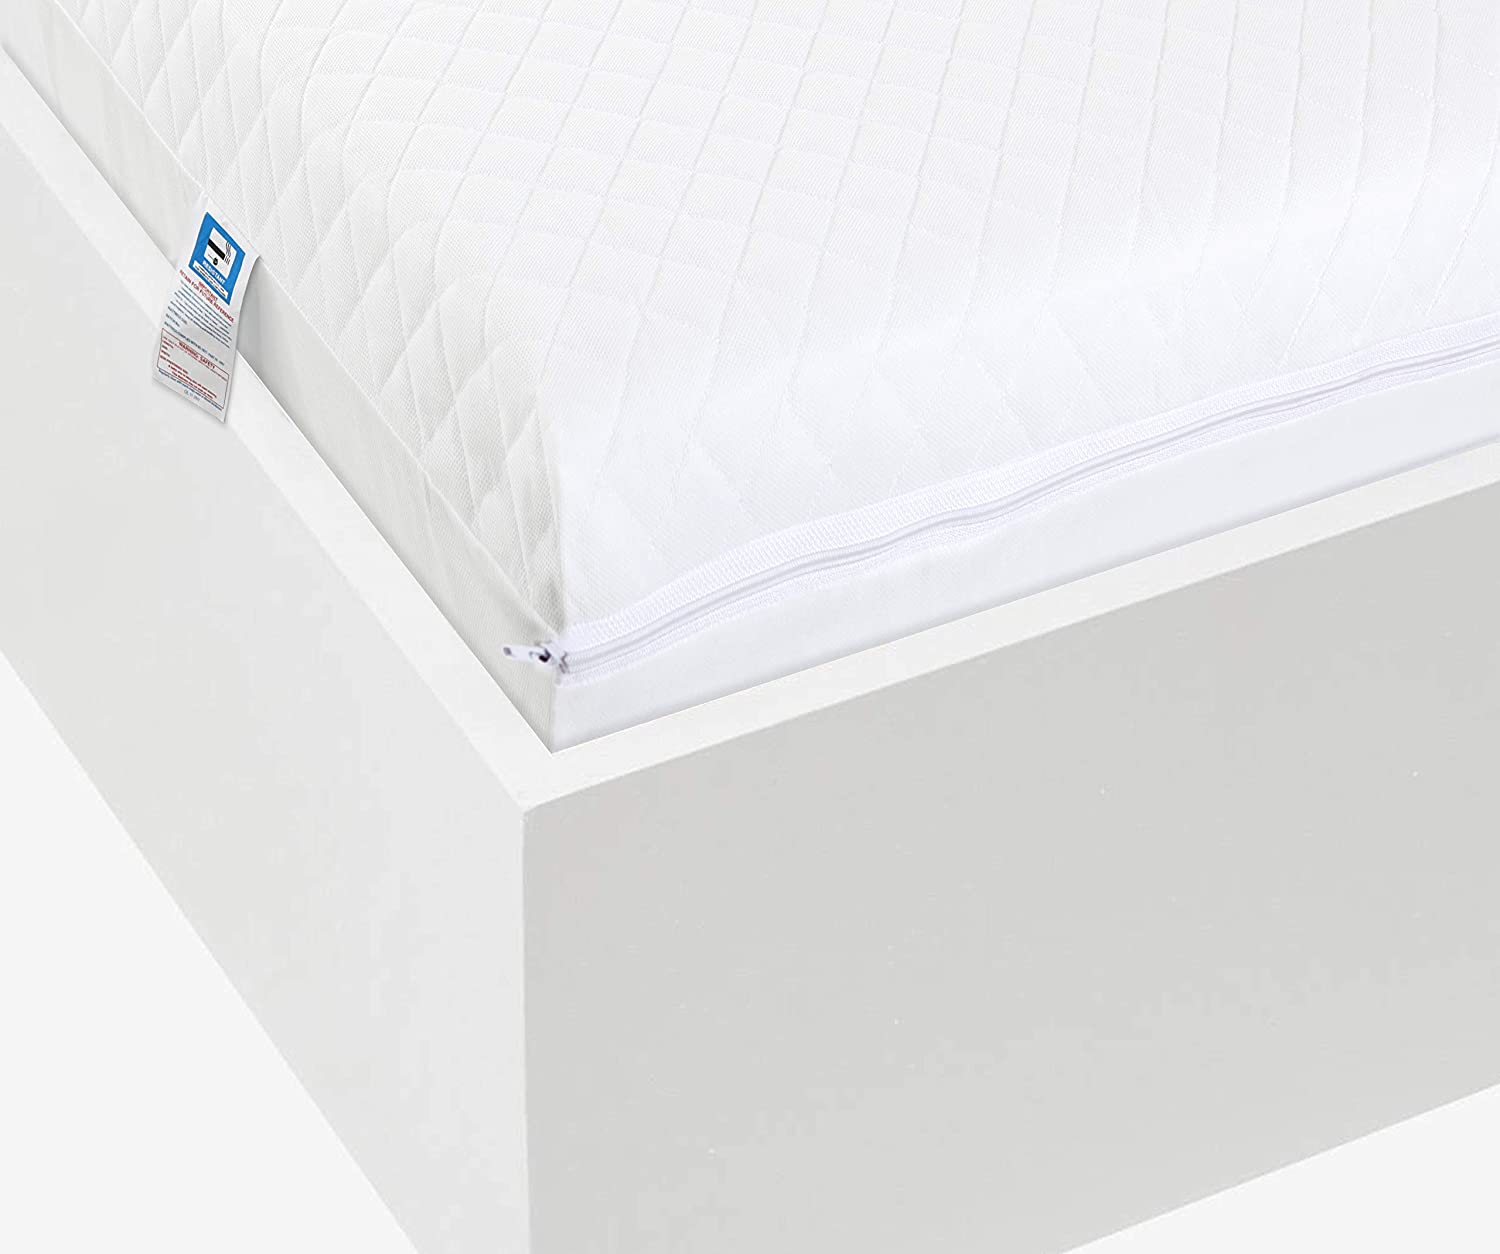 Lightweight Waterproof Eco Super Soft Quilt Easy Care Microfiber Baby Toddler Cot Bed Mattress Fits Mothercare and Mamas /& Papas Sizes Breathable Extra Thick 120 x 60 x 13 cm